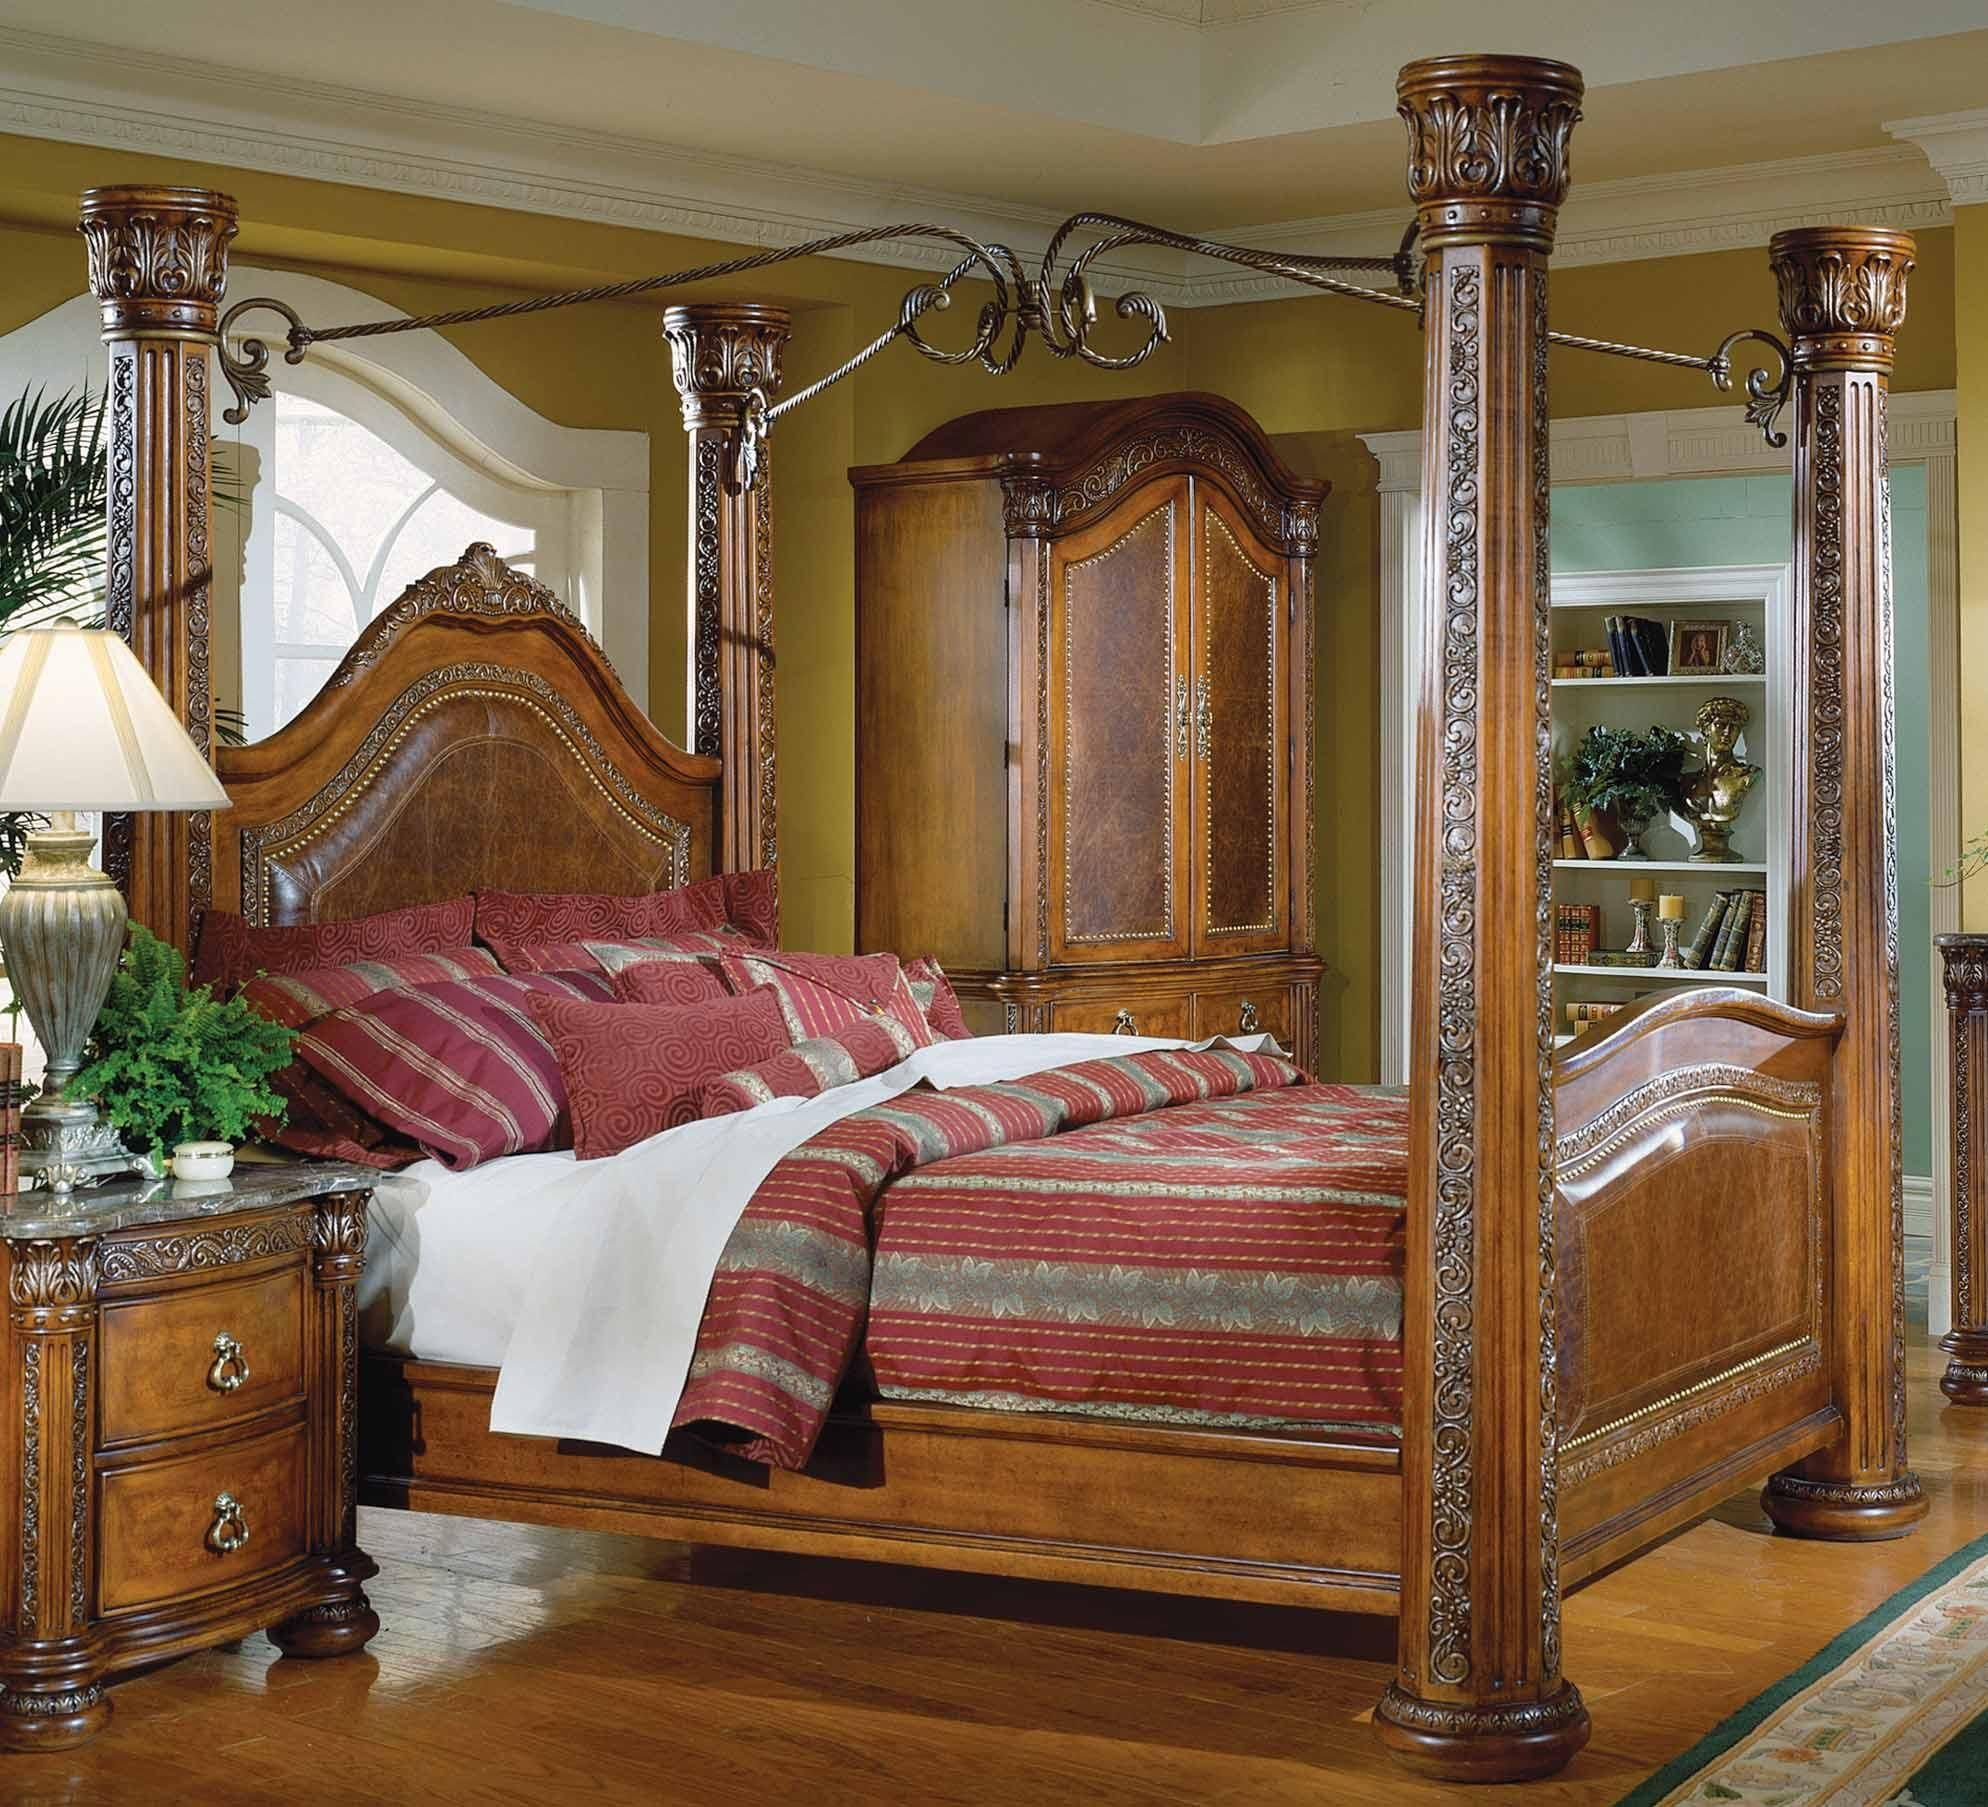 awesome bed....awesome..